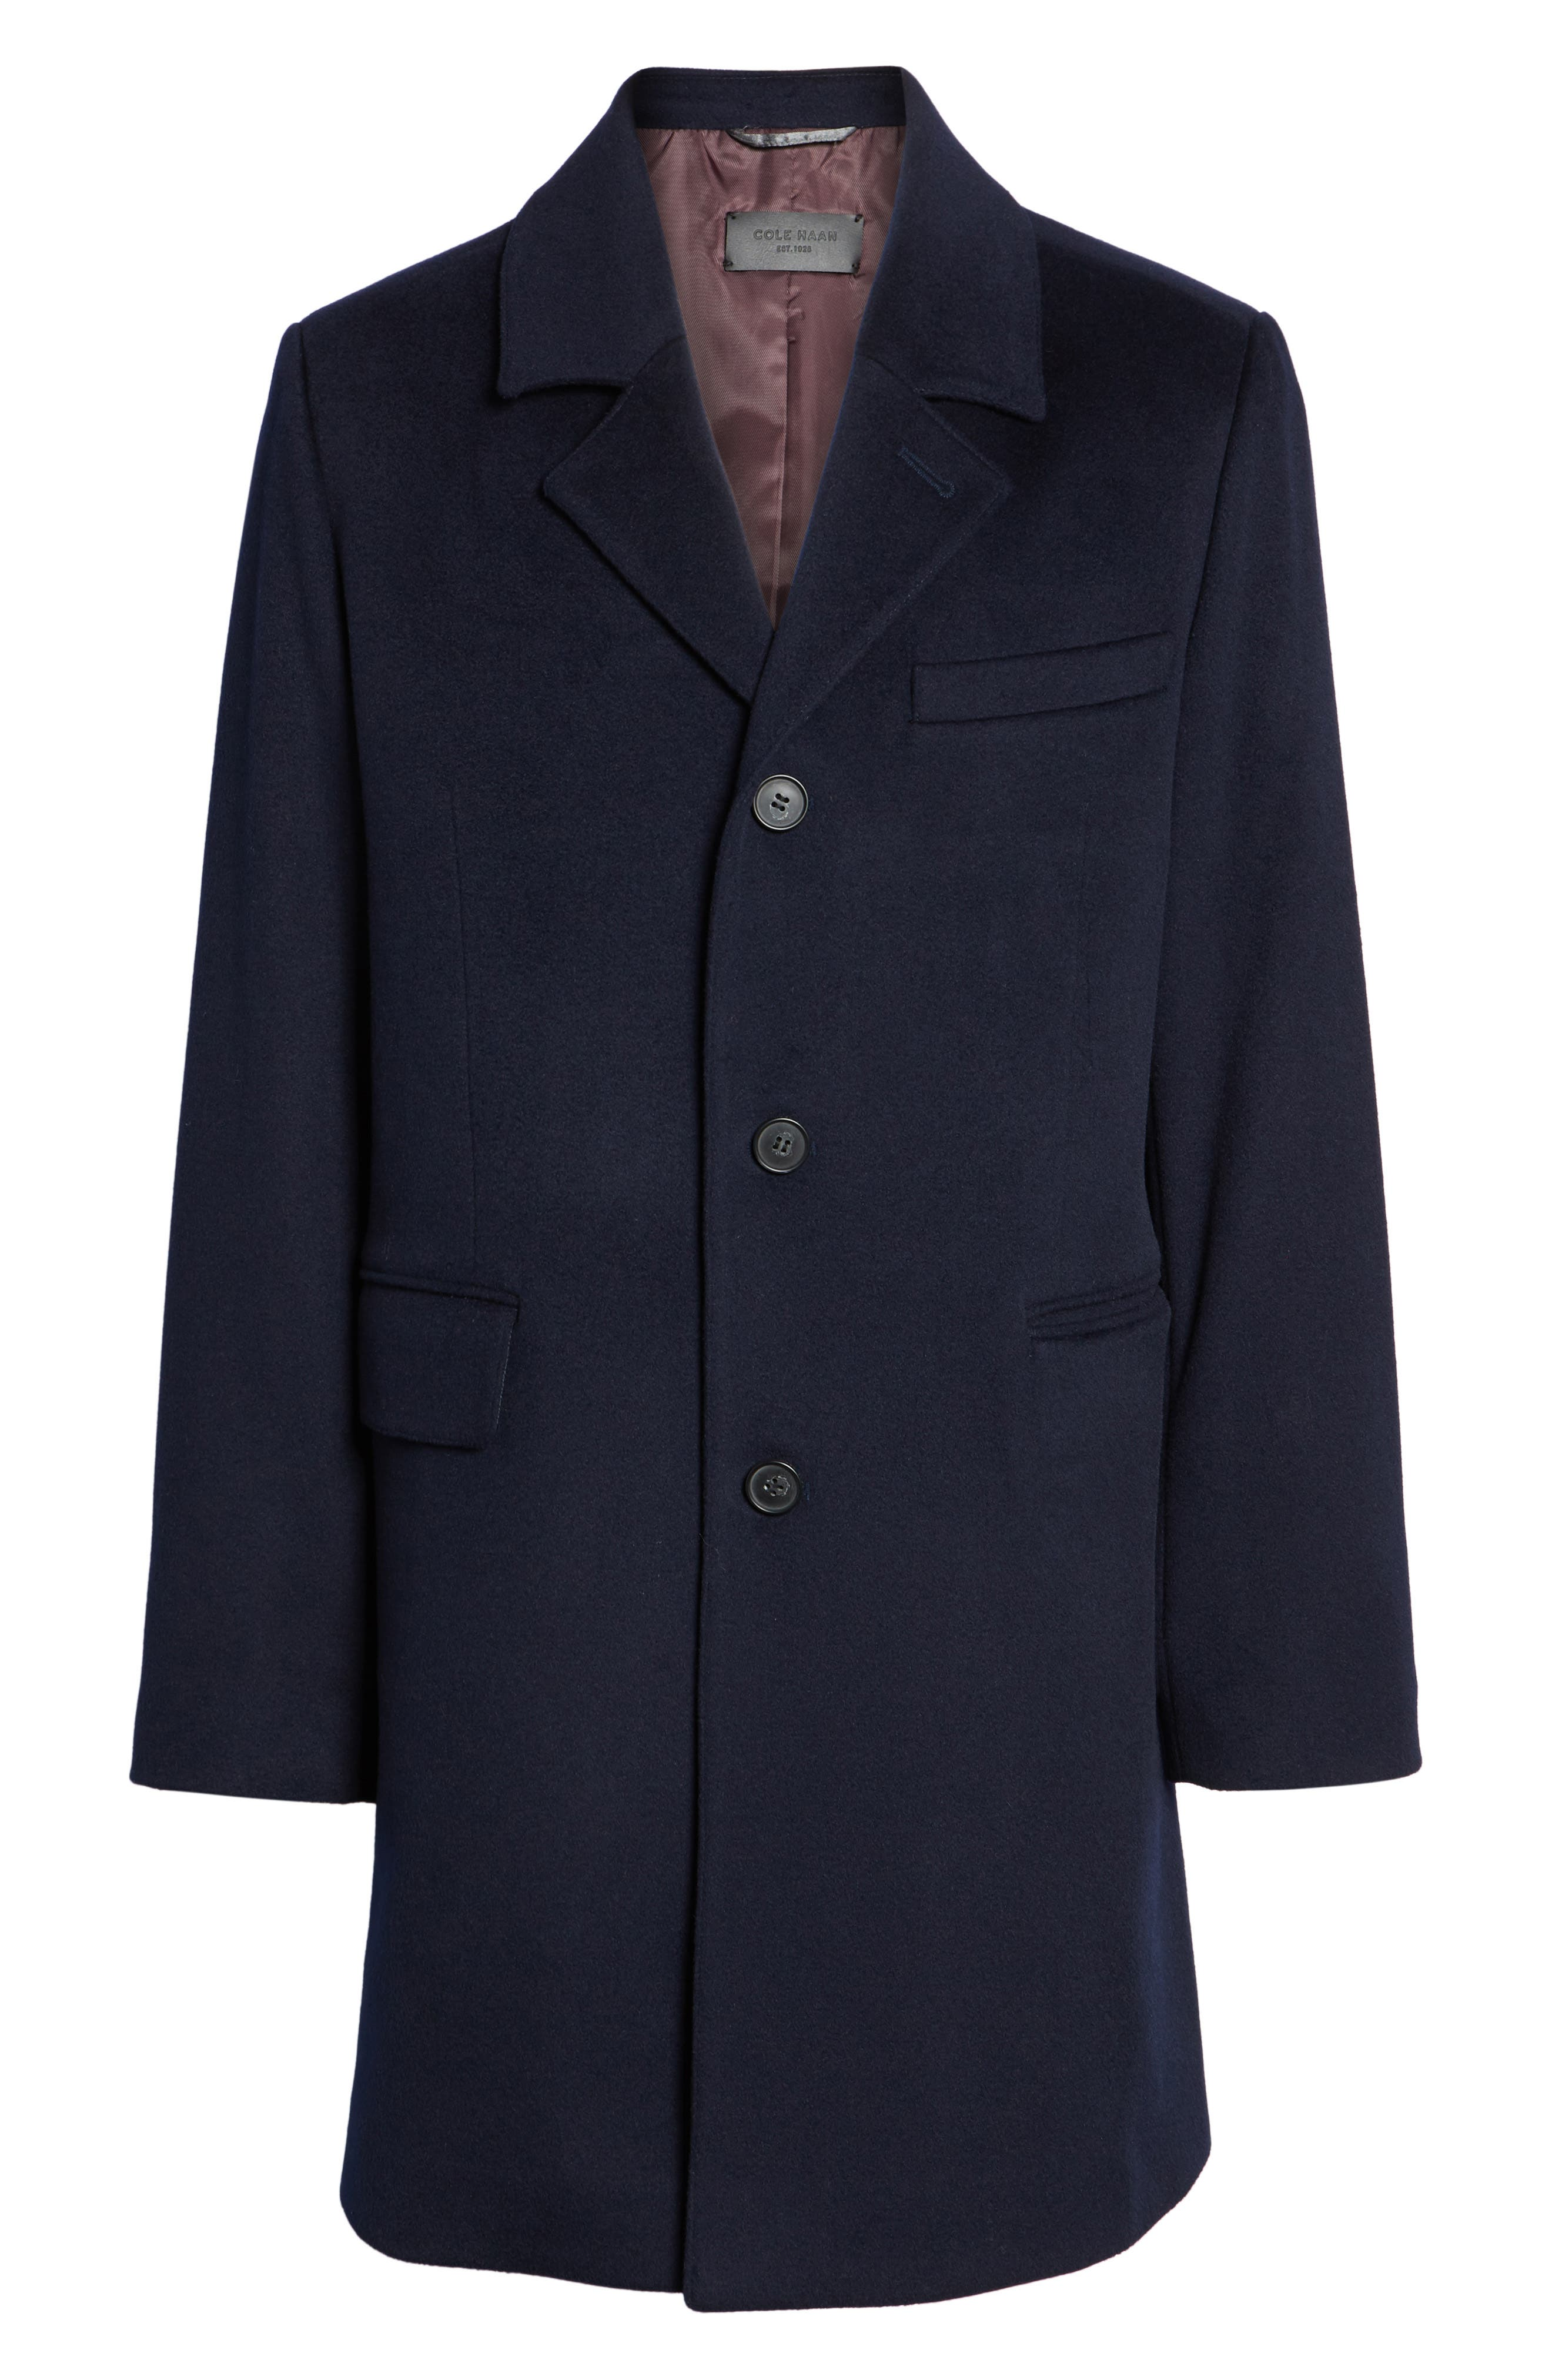 Lambswool Topcoat,                             Alternate thumbnail 6, color,                             Navy